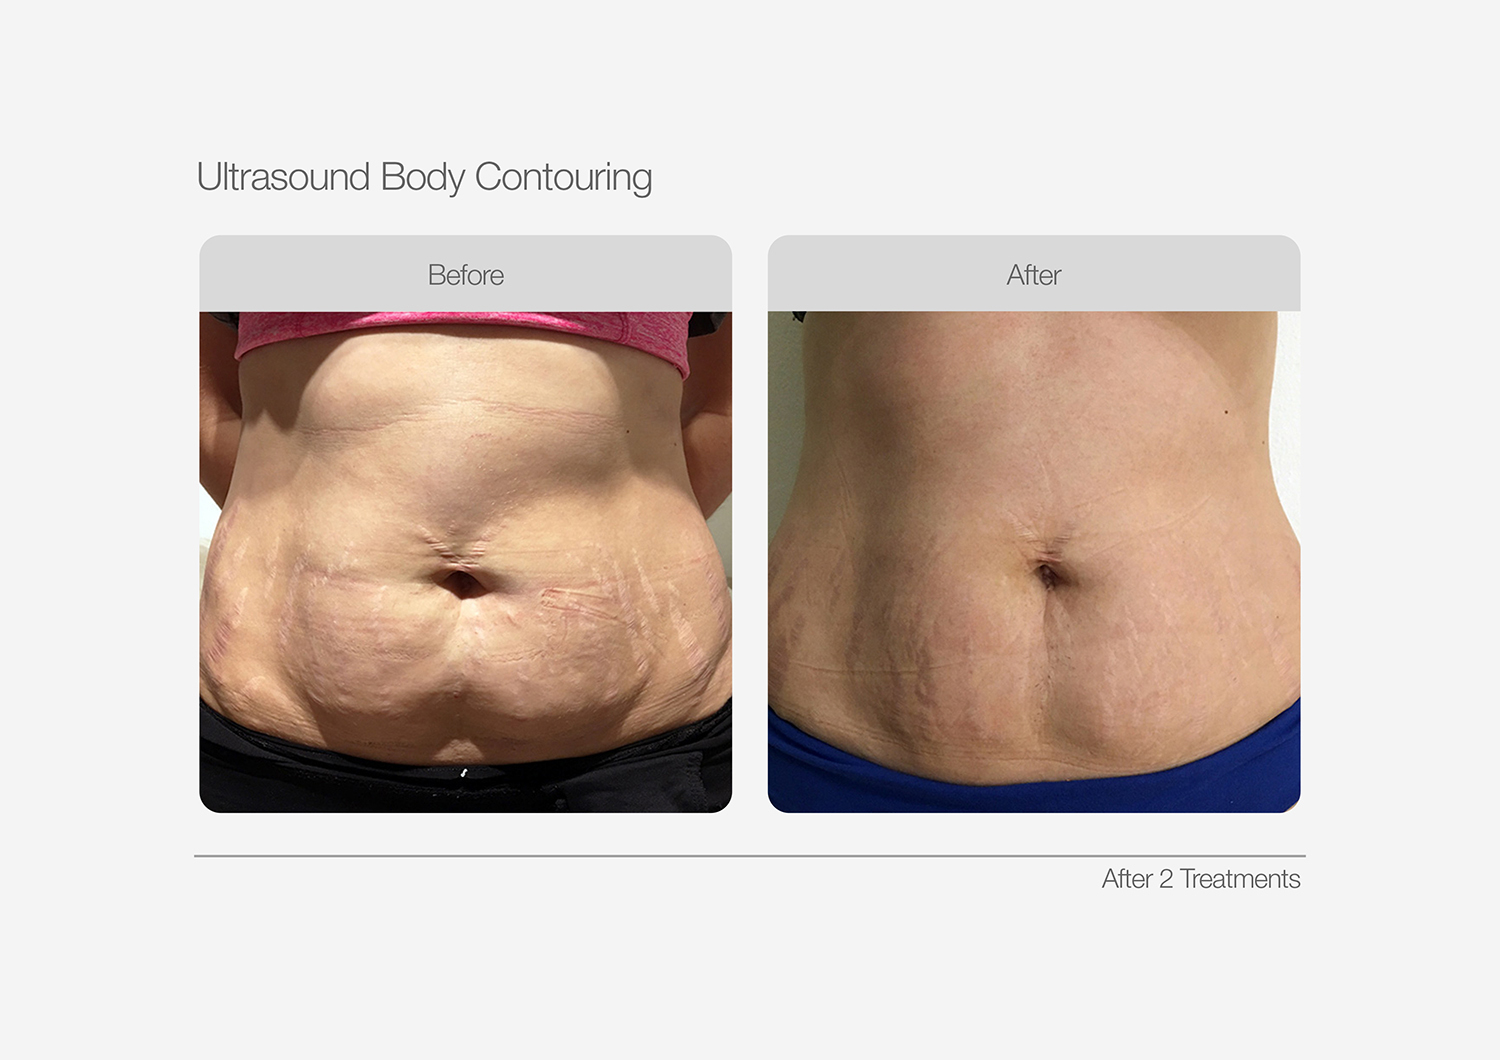 Ultrasound-Body-Contouring-Before-After-08